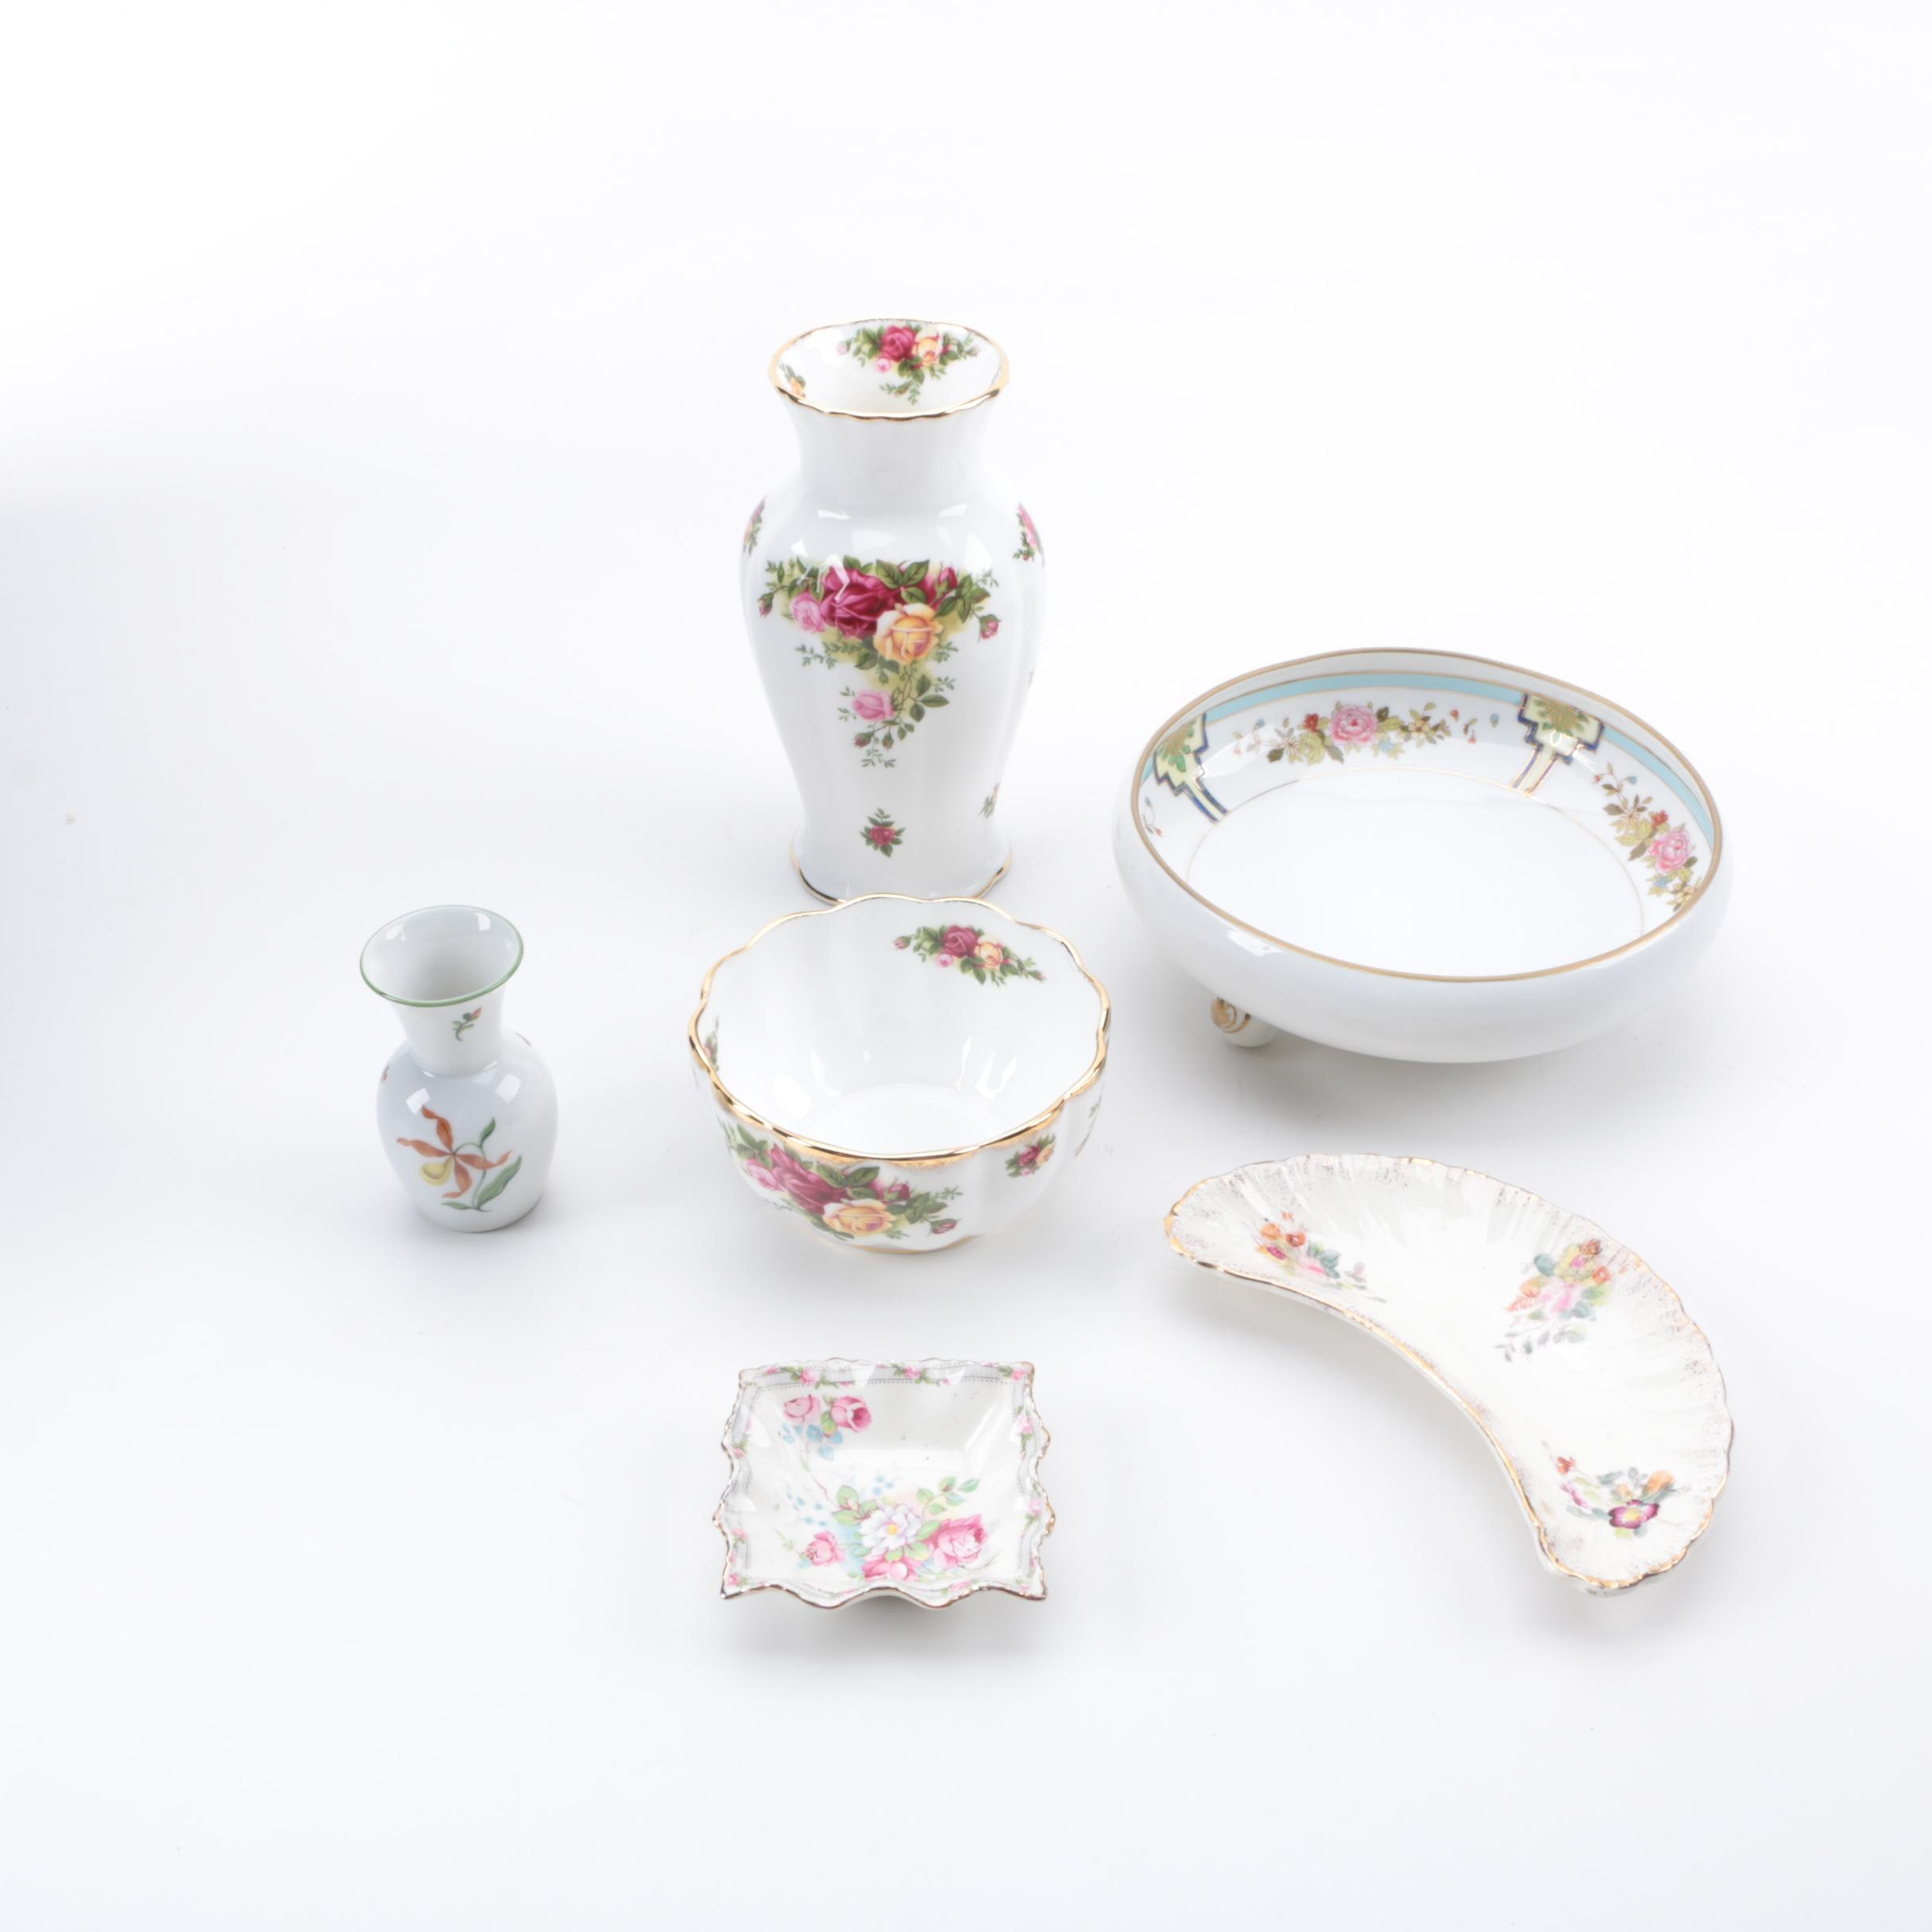 Porcelain Assortment Including Royal Albert and Nippon